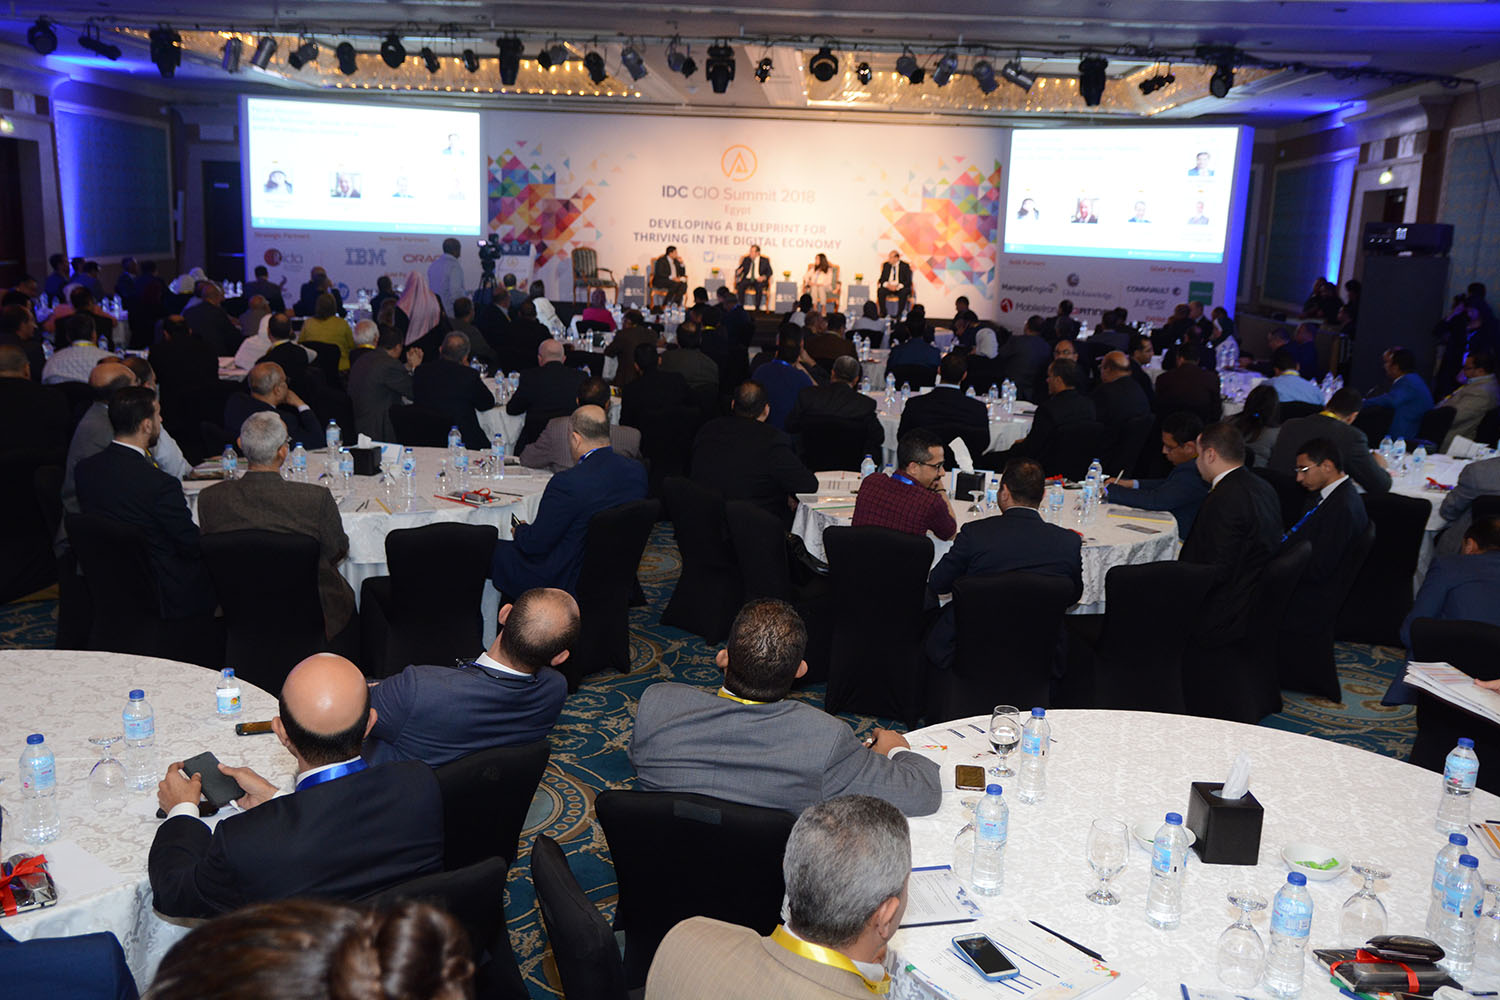 South africa idc cio summit 2018 market leading vendors and 100 of the countrys most influential ict leaders gather to lay down a blueprint for thriving in the digital economy malvernweather Image collections